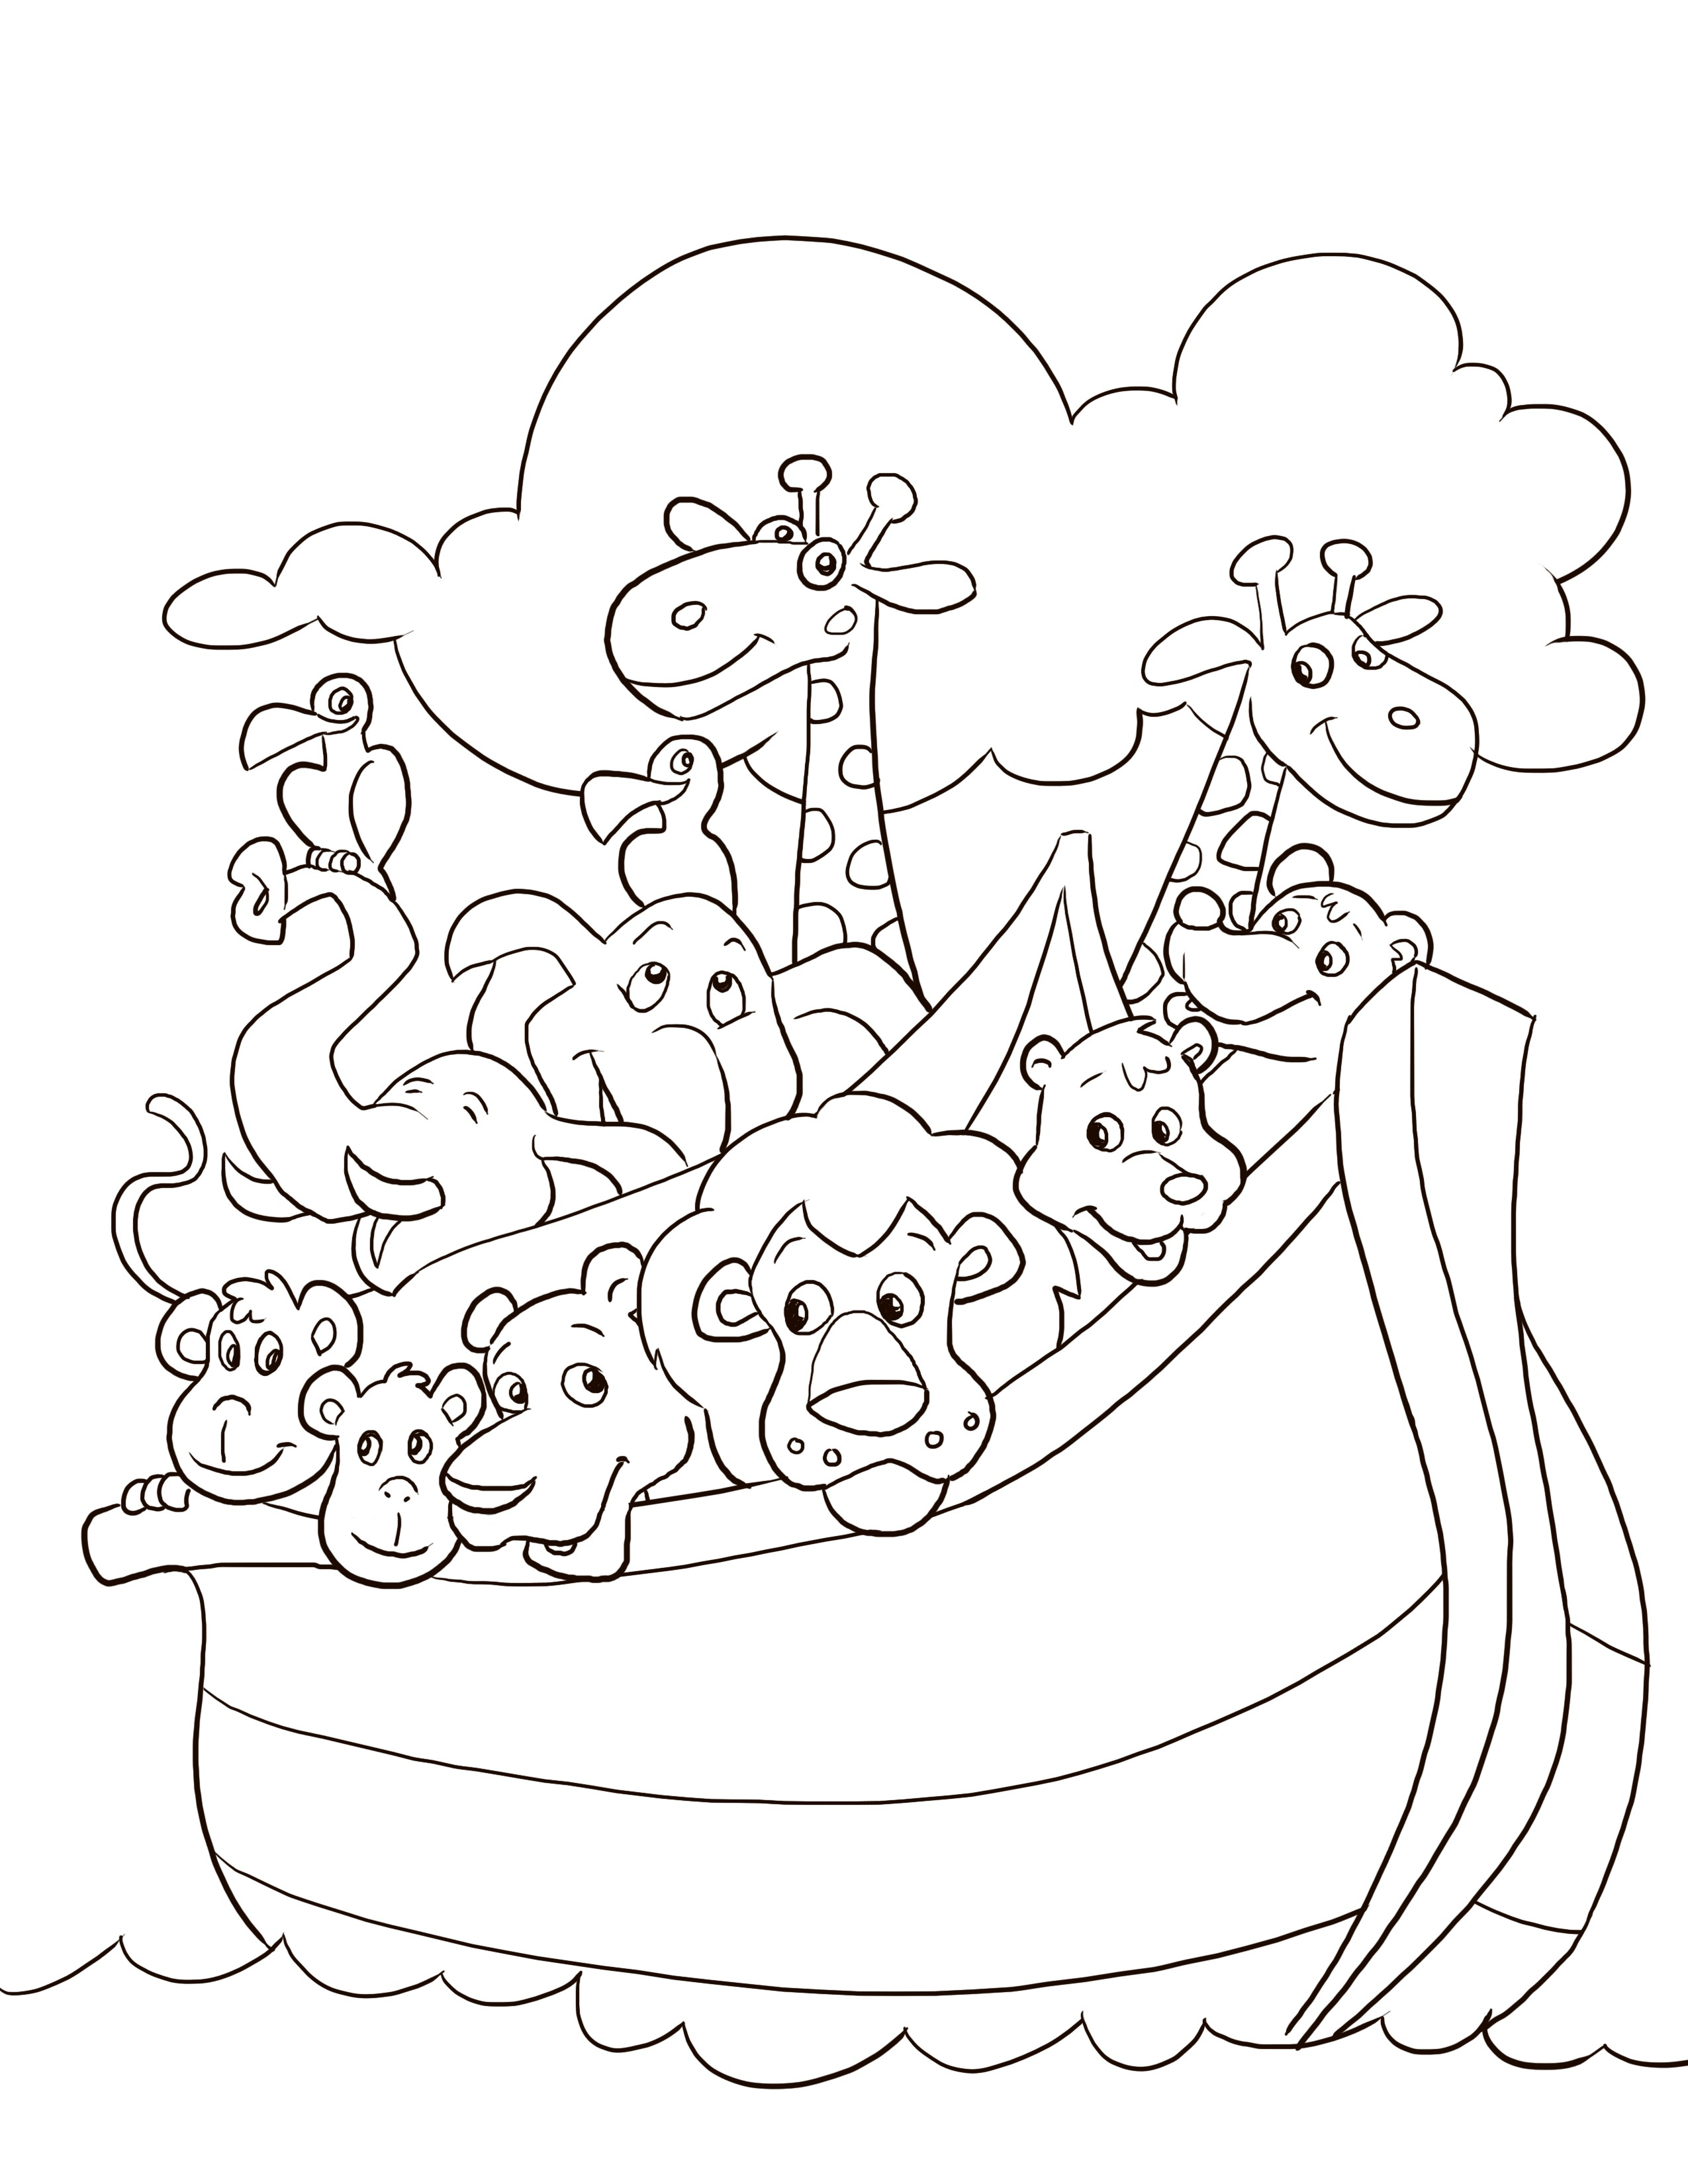 Daniel Boone Coloring Pages at GetDrawings.com   Free for ...